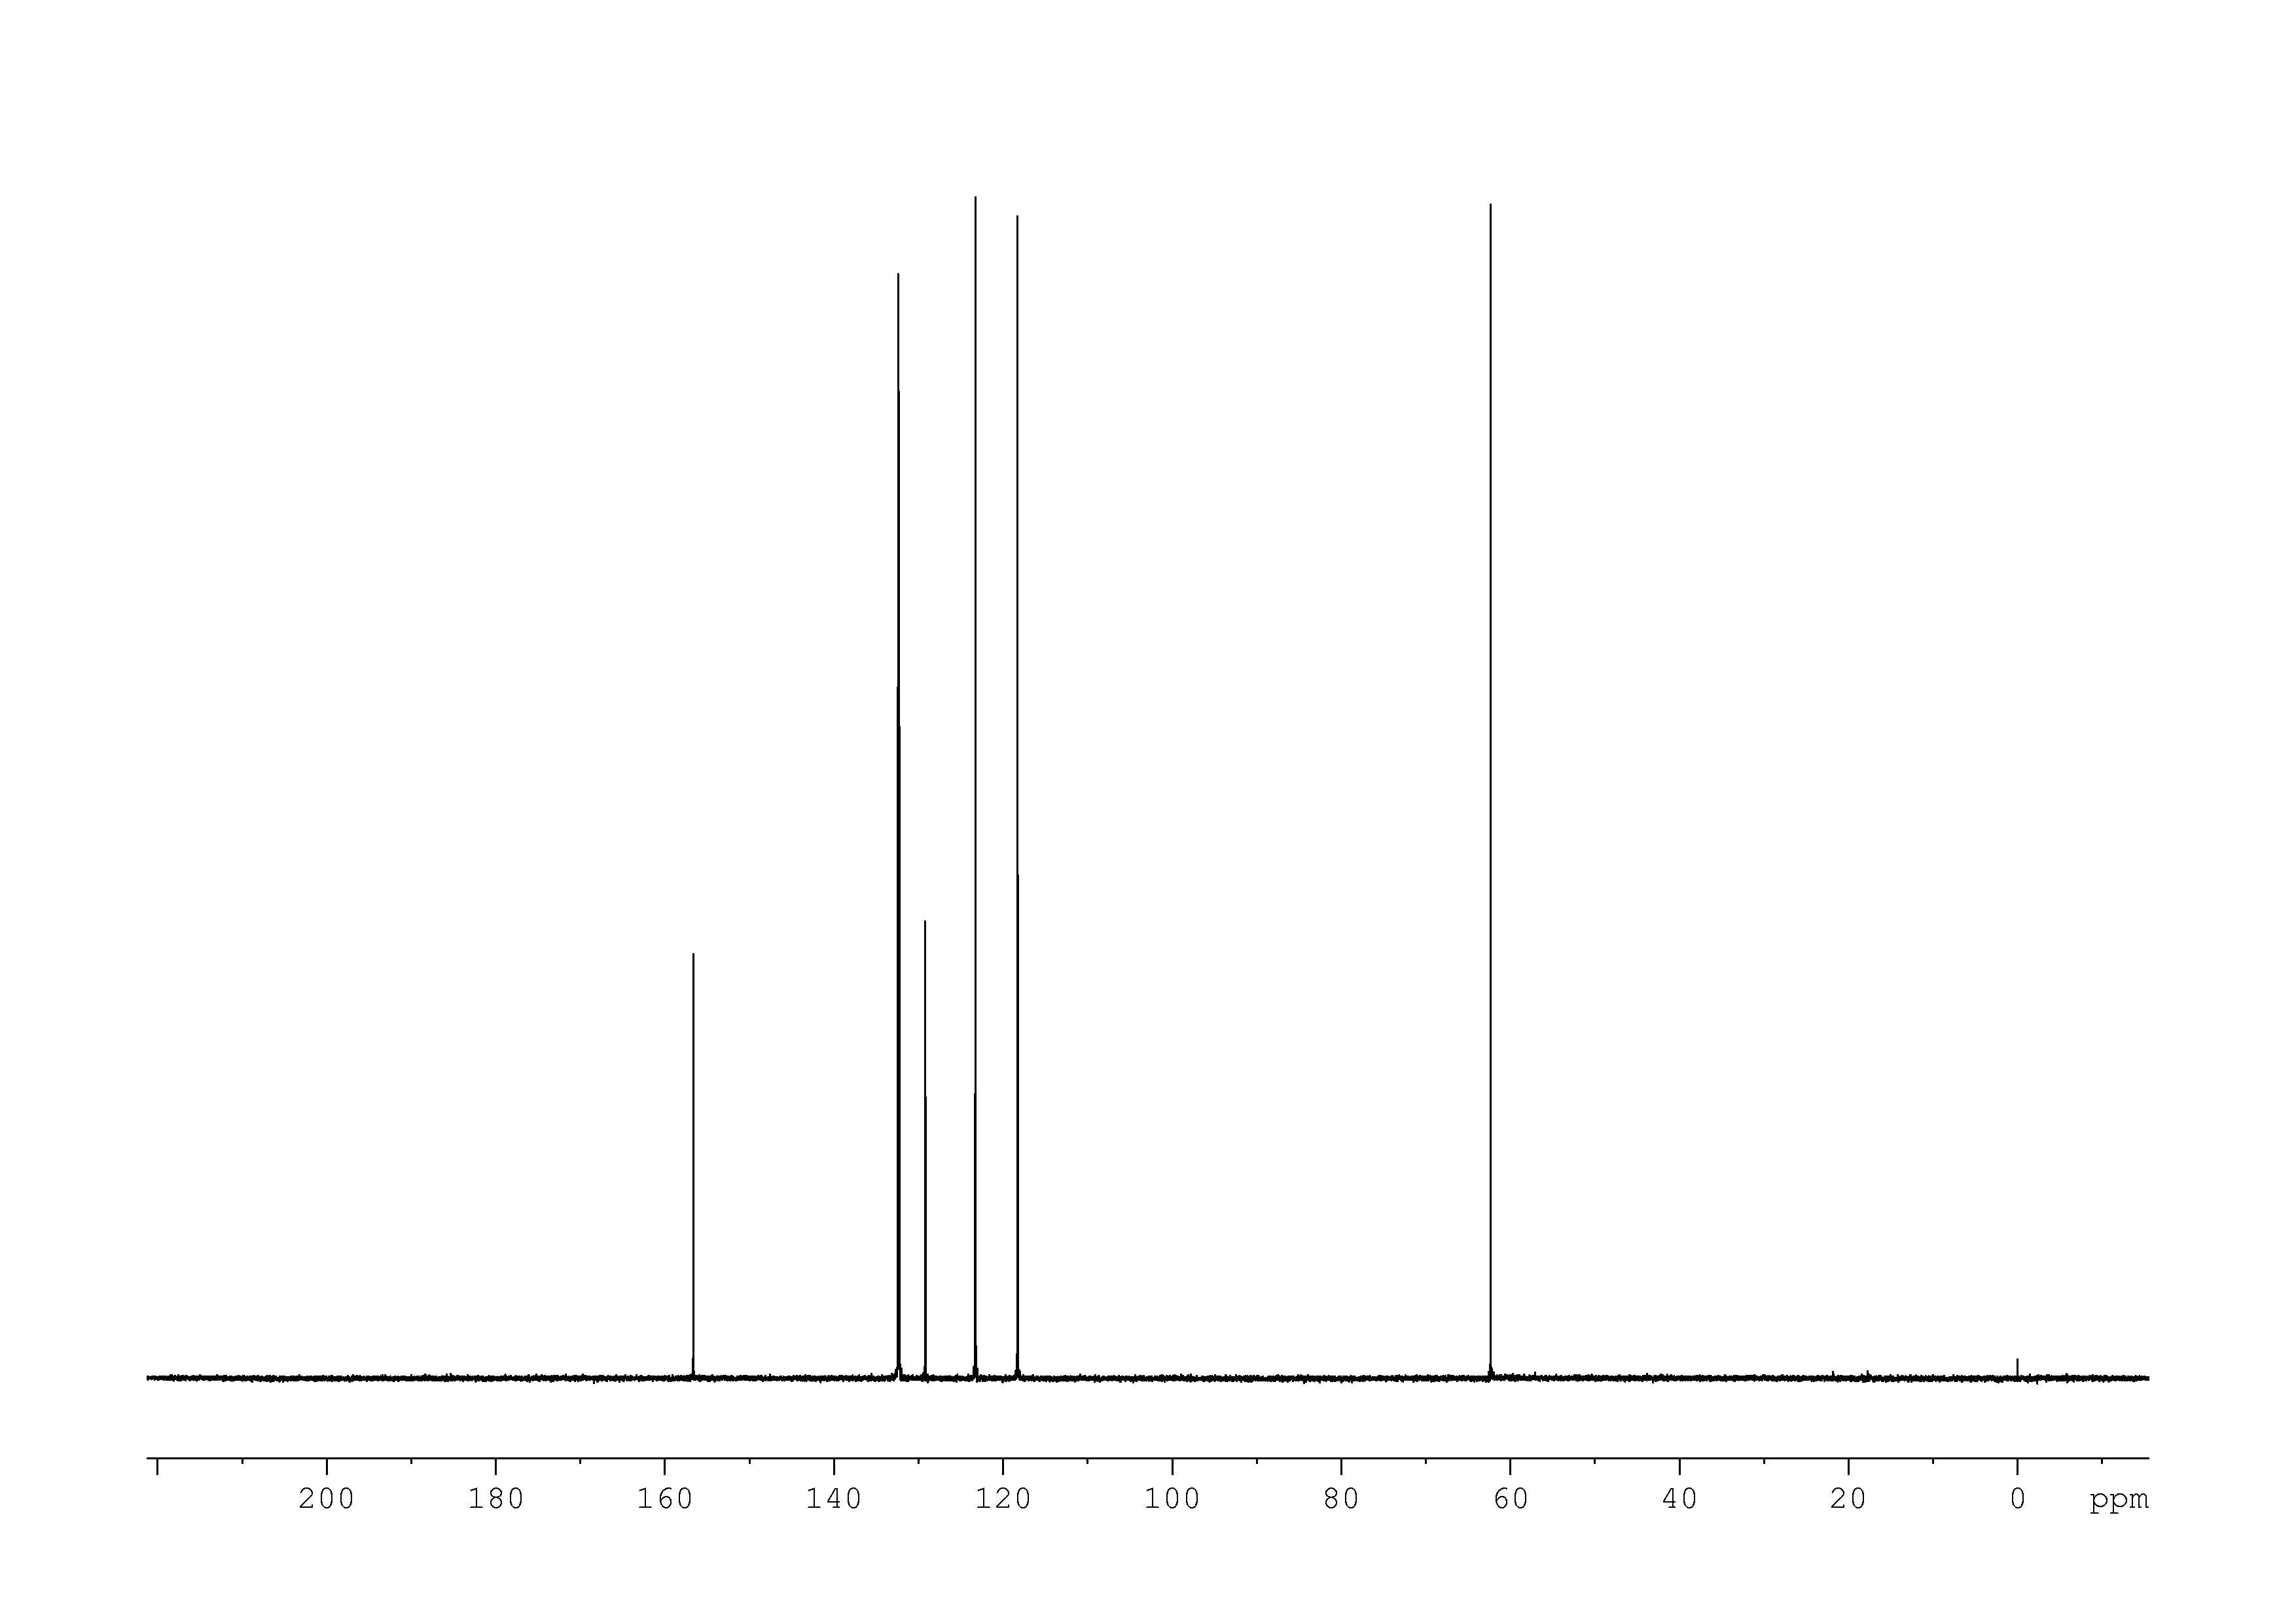 1D 13C, 7.4 spectrum for saligenin